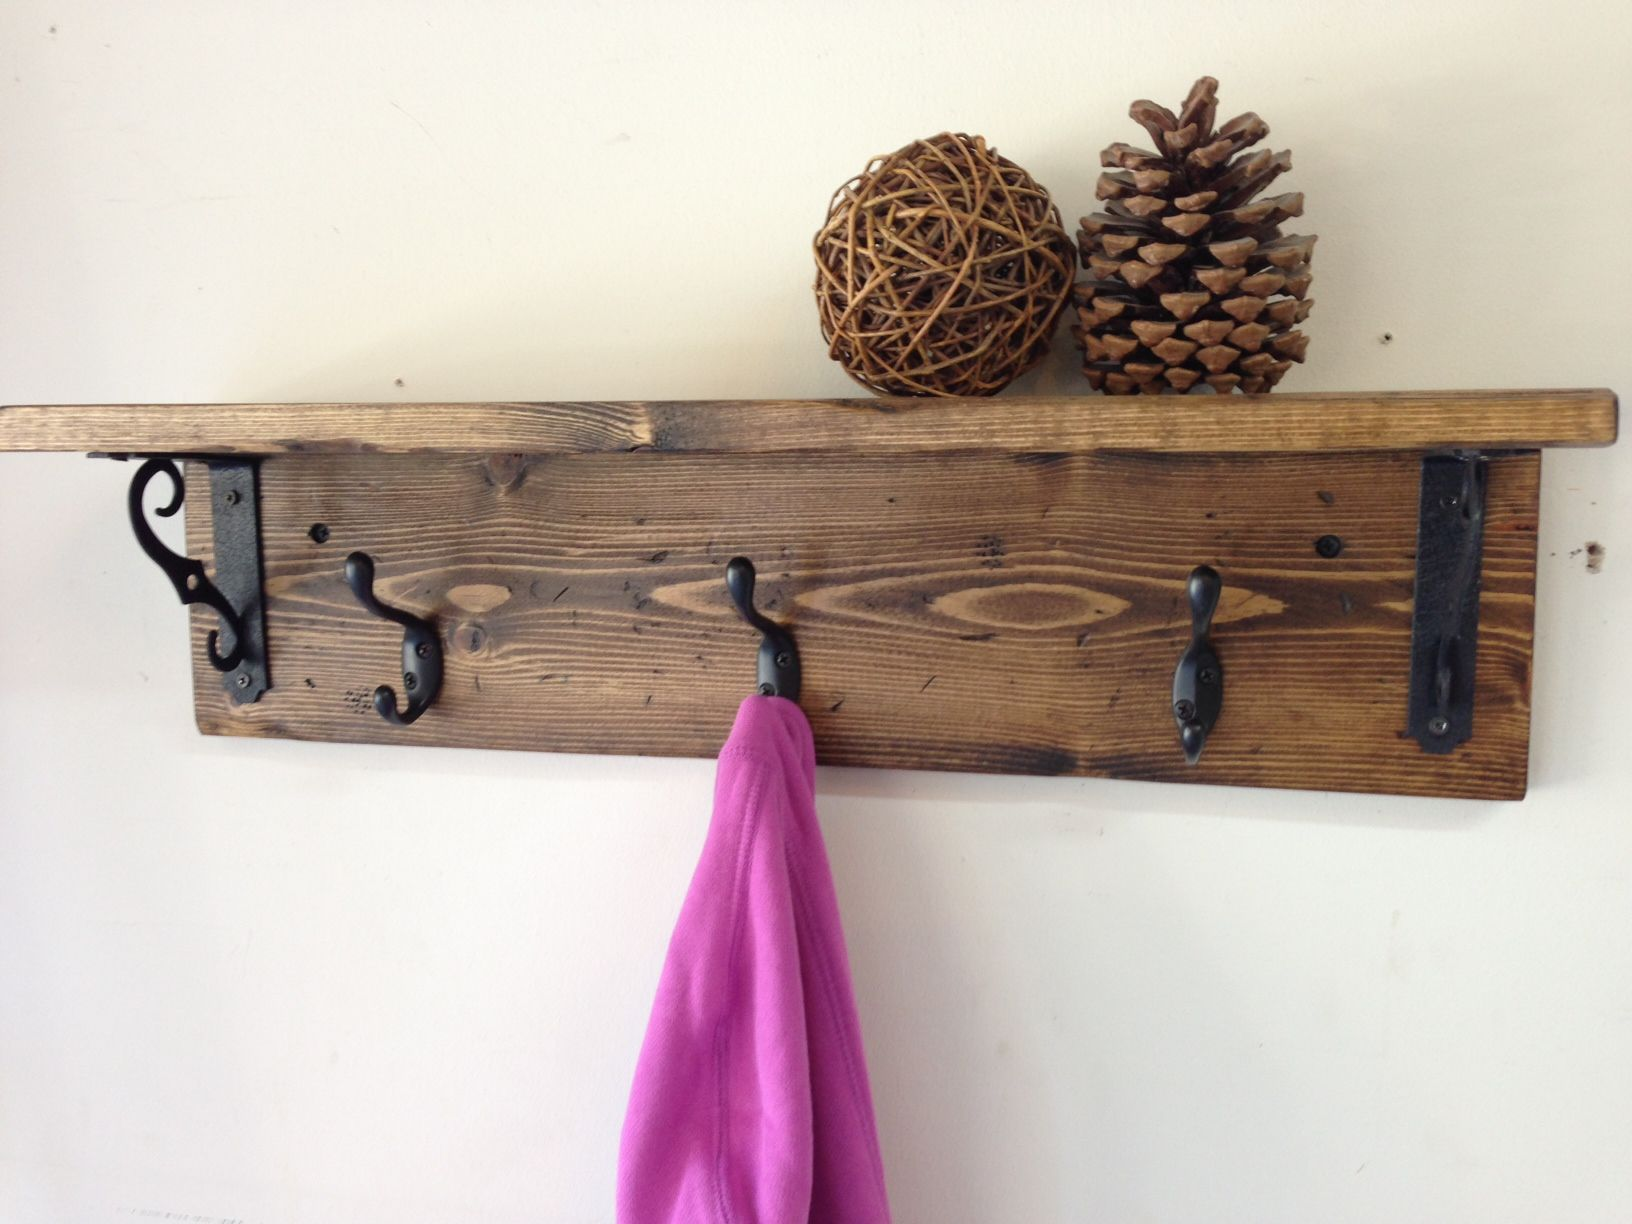 handmade wall mount rustic wood coat rack with shelf a  - handmade wall mount rustic wood coat rack with shelf a beautiful storageand